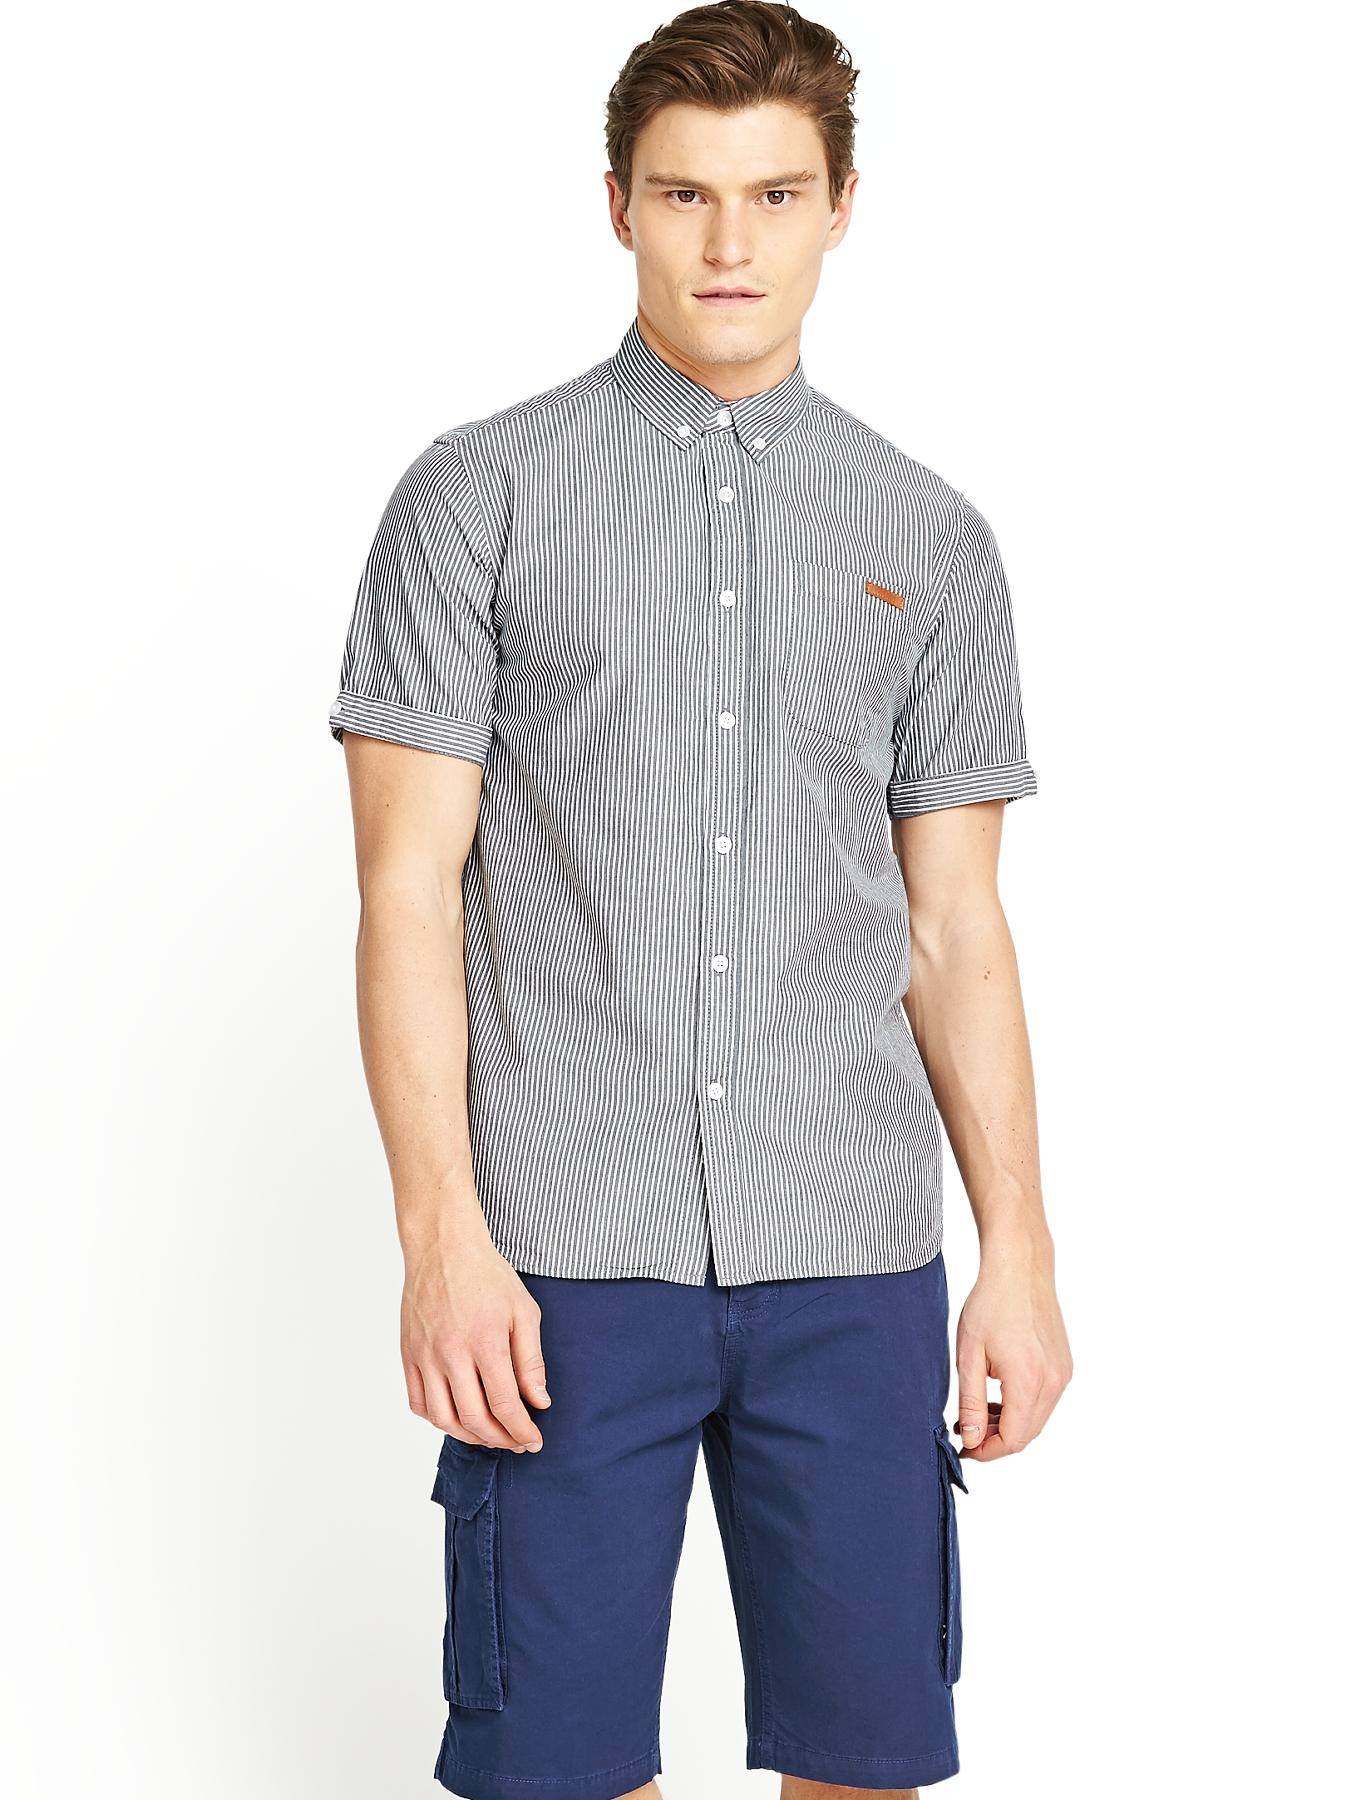 Mens Pelham Stripe Shirt - Charcoal, Charcoal